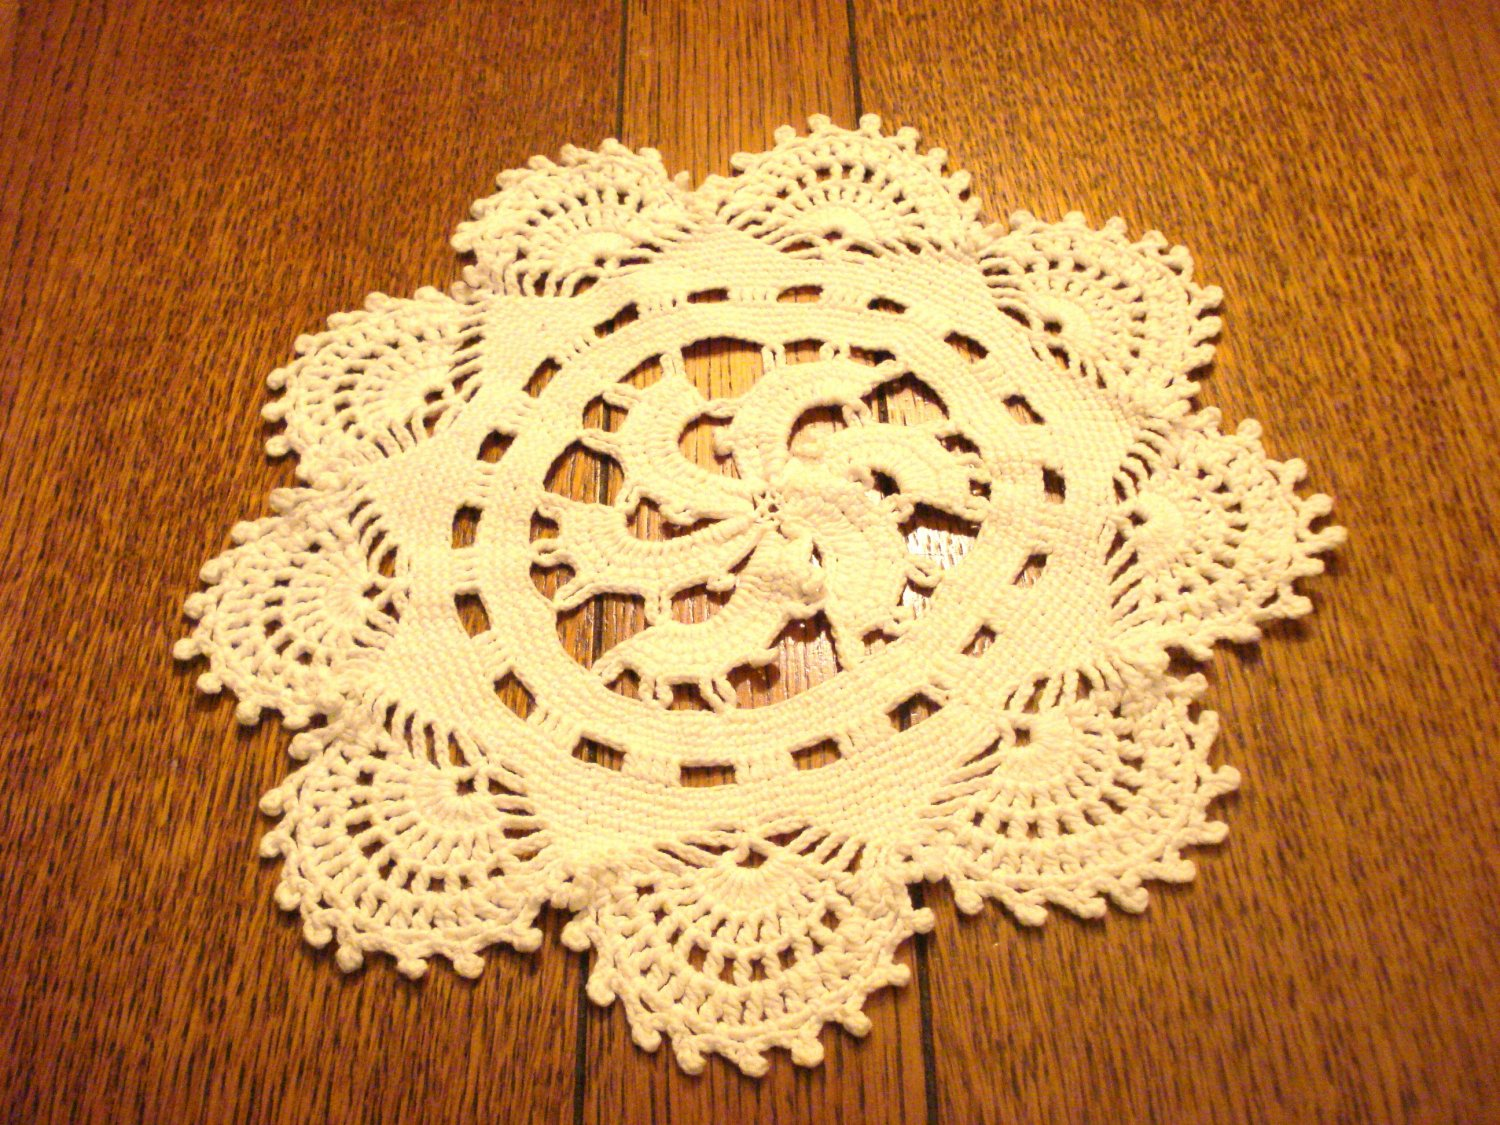 4 Matching crocheted doilies white swirl motif 2 sizes vintage hc2997